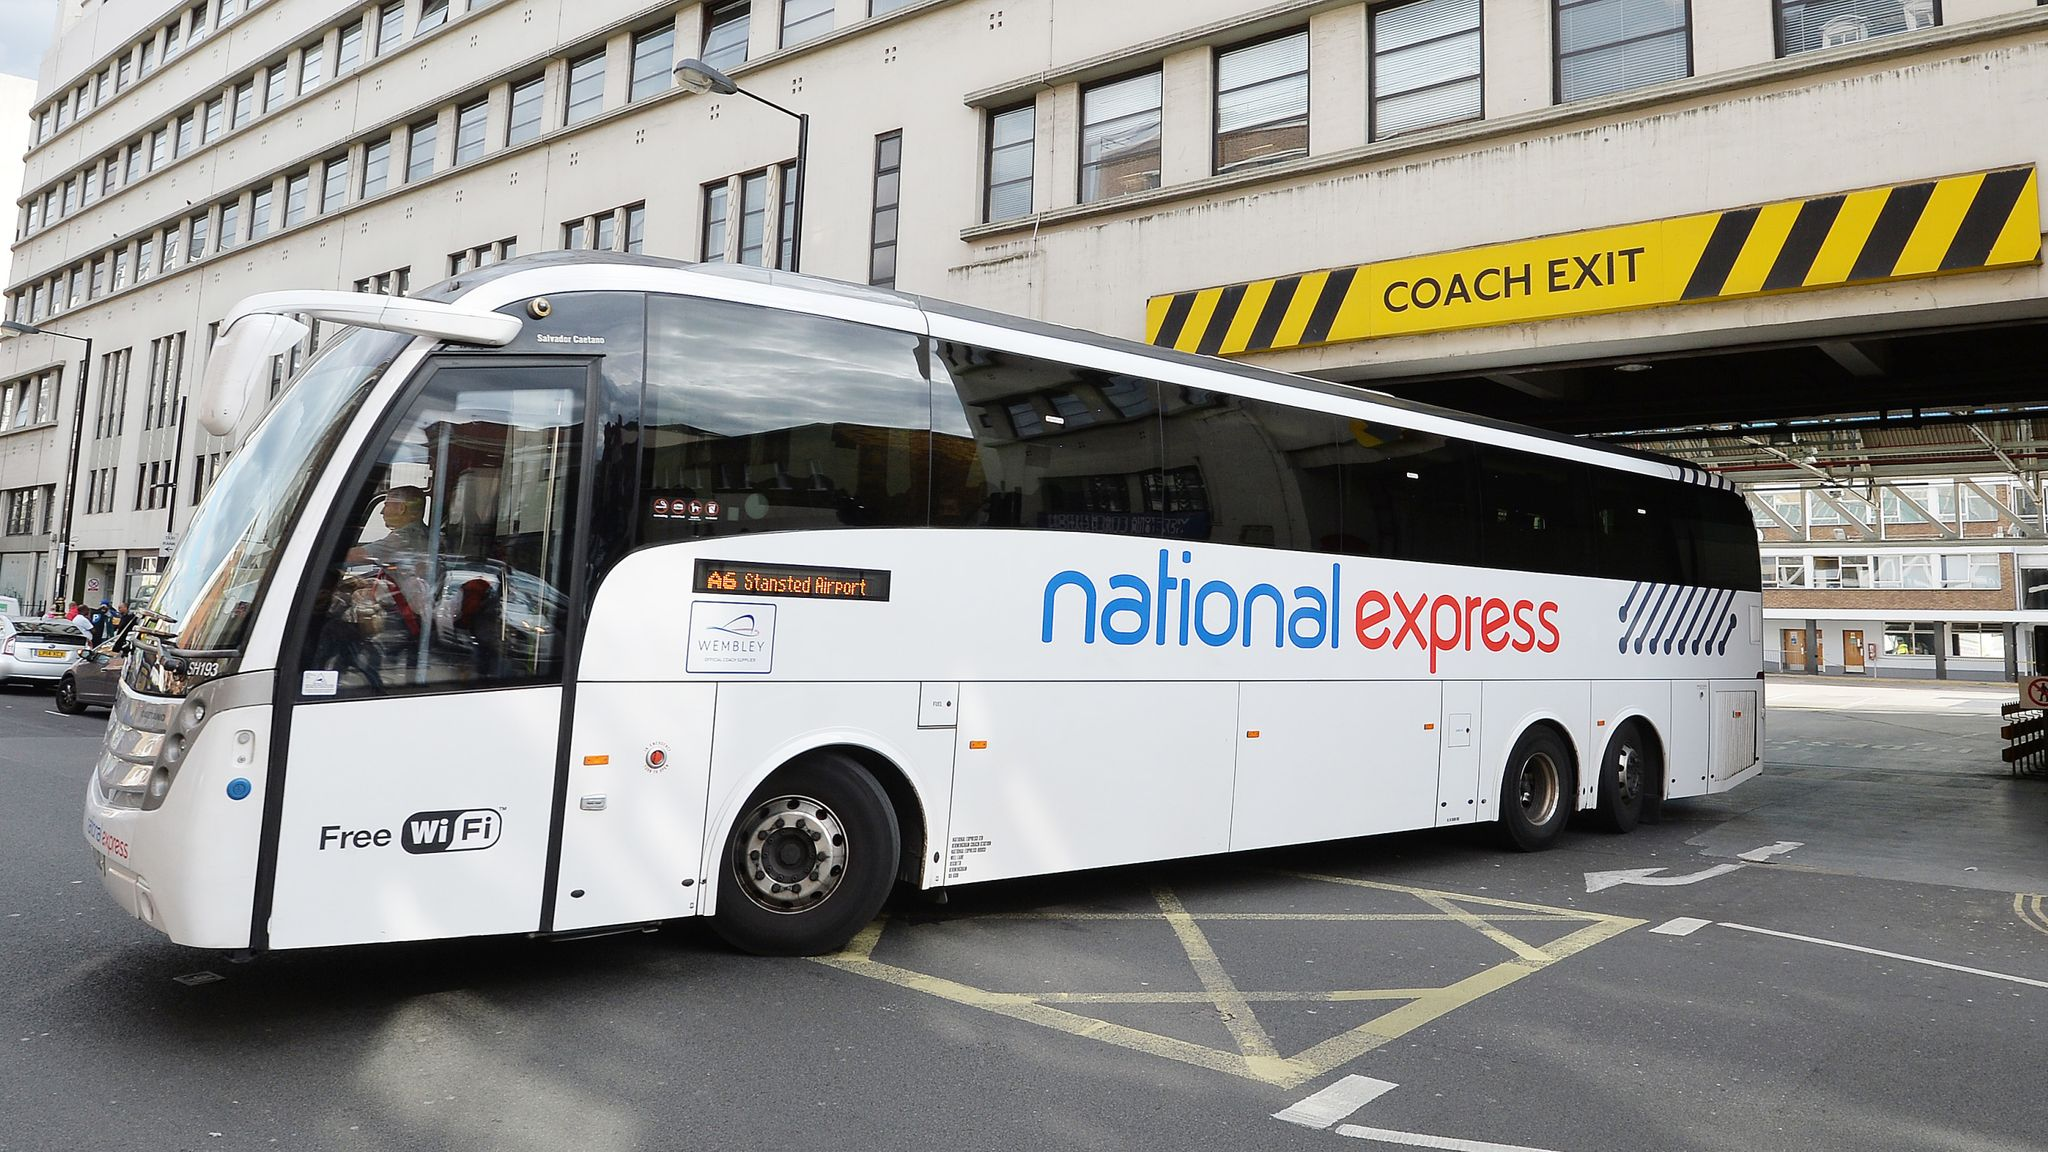 National Express :All services to suspend from 23:59 on Sunday 5 April